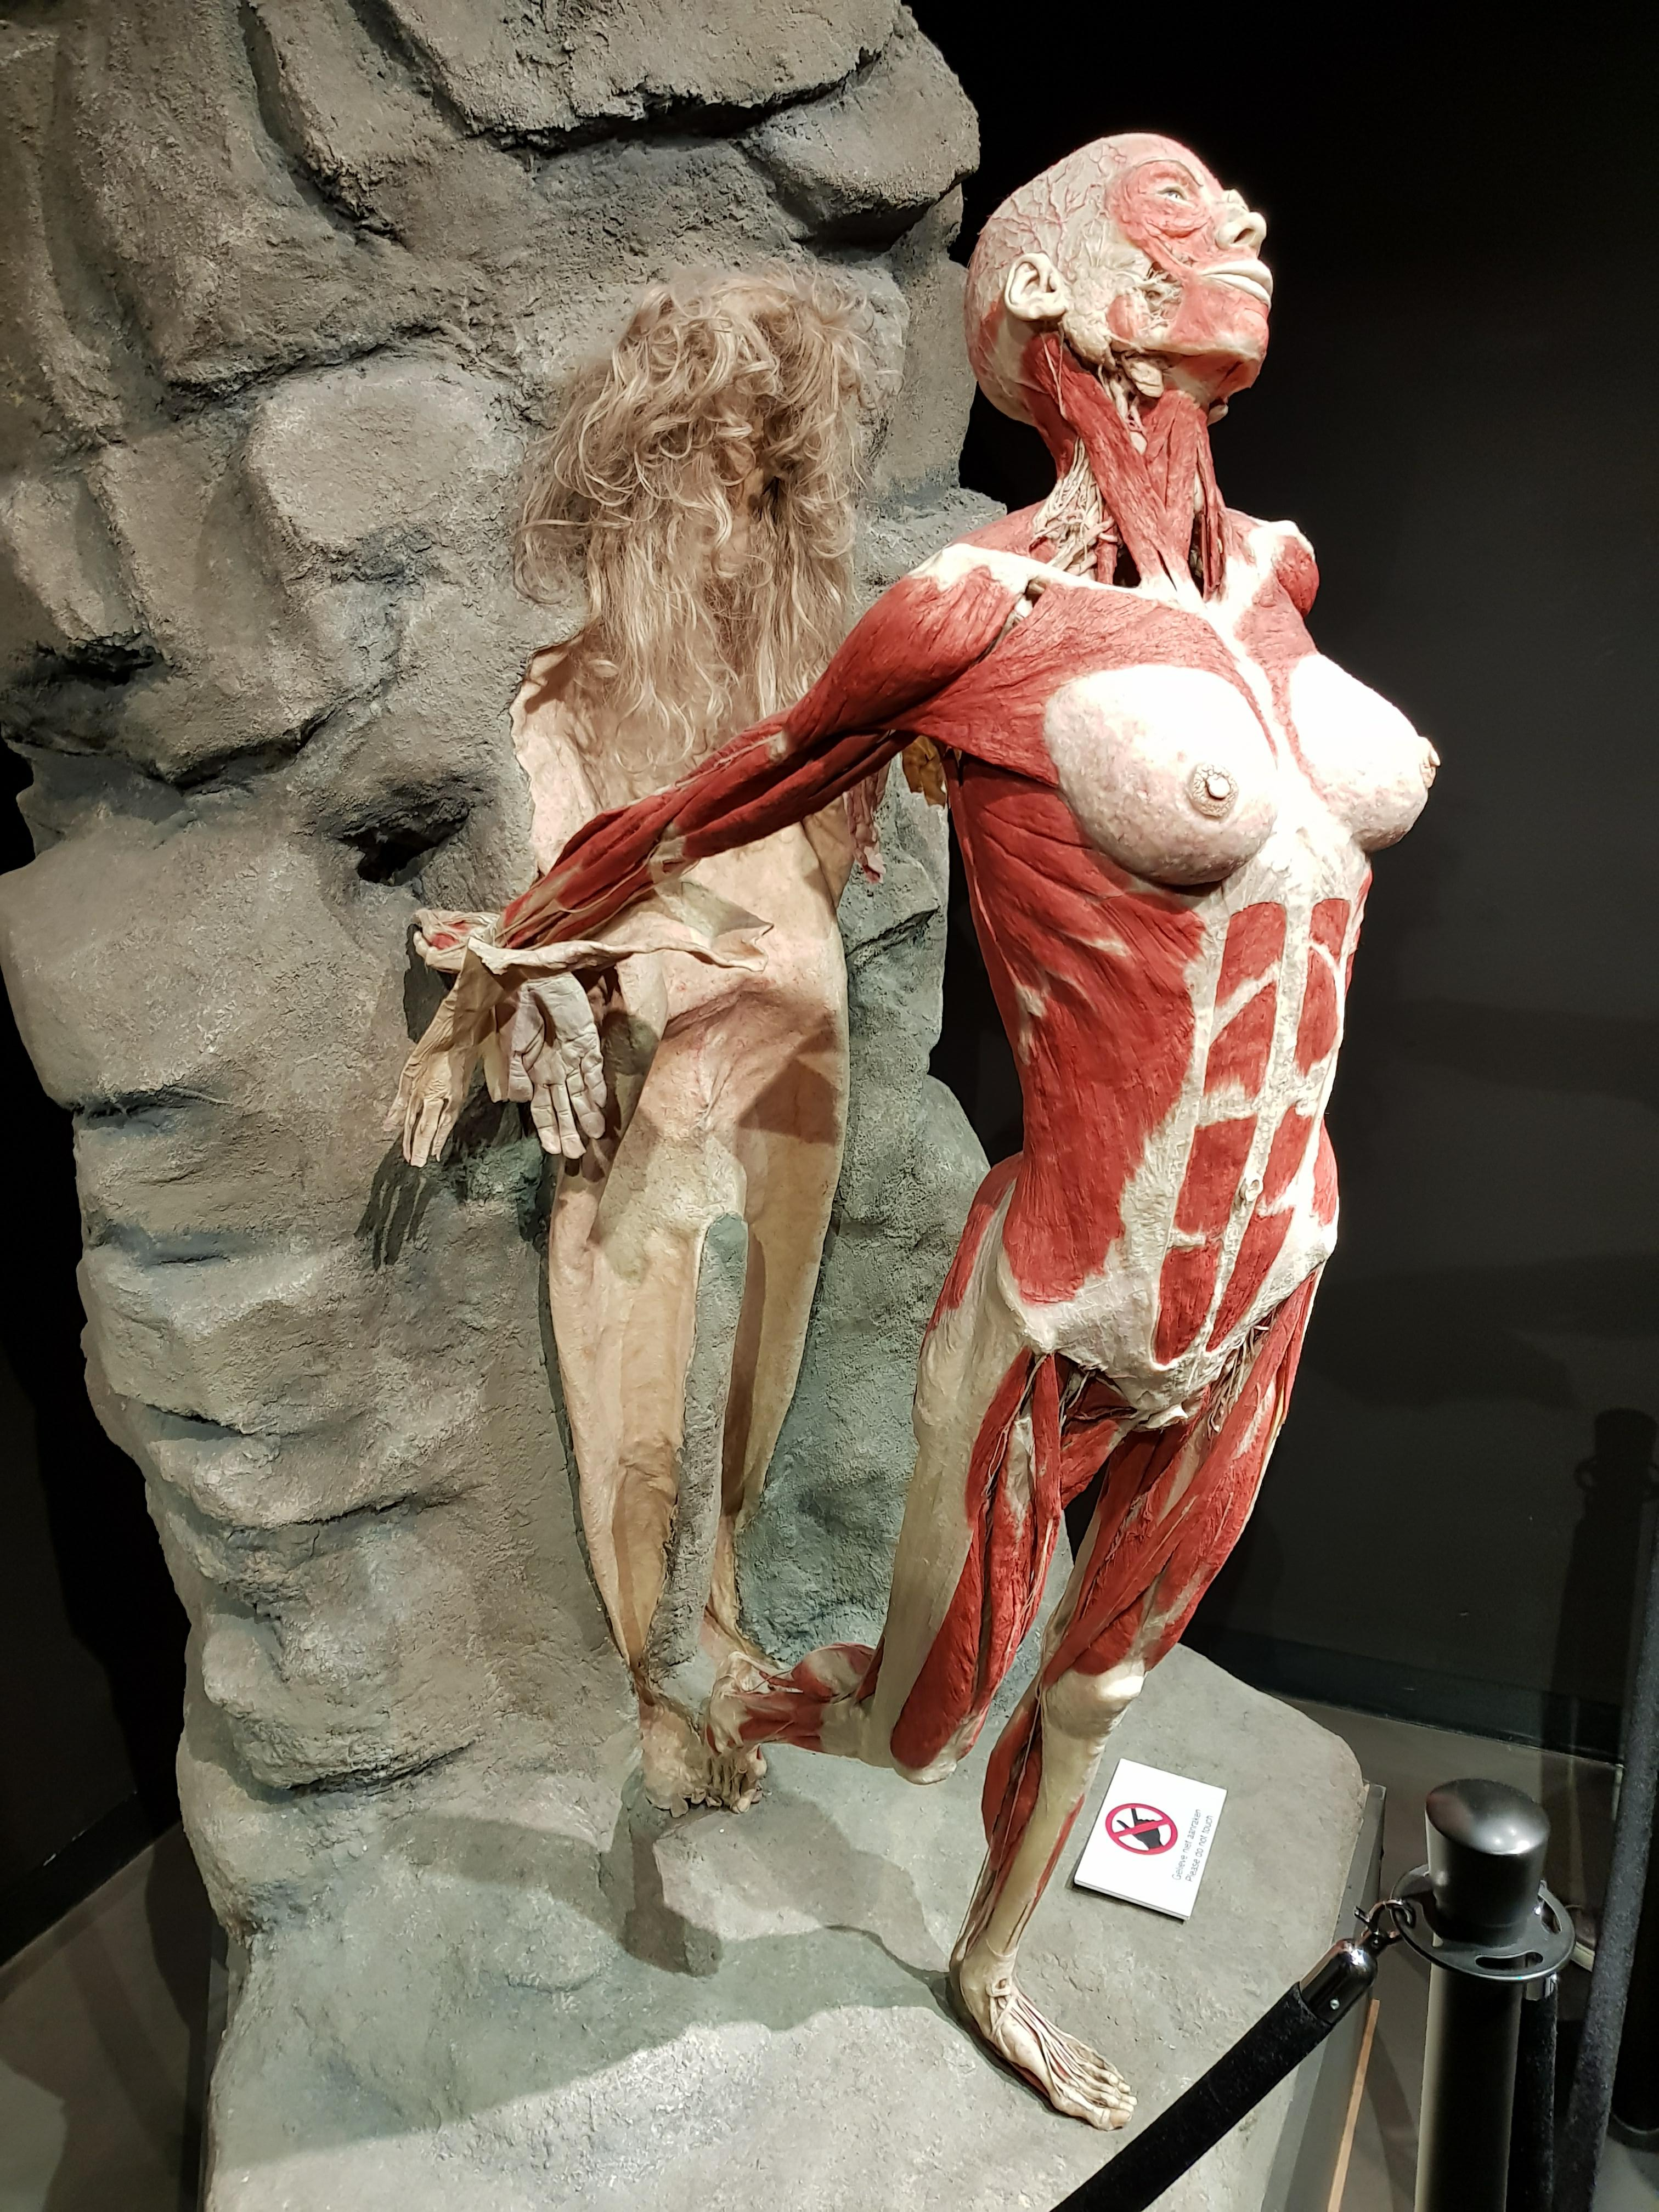 A statue of a woman emerging from her skin where you can just see her muscles